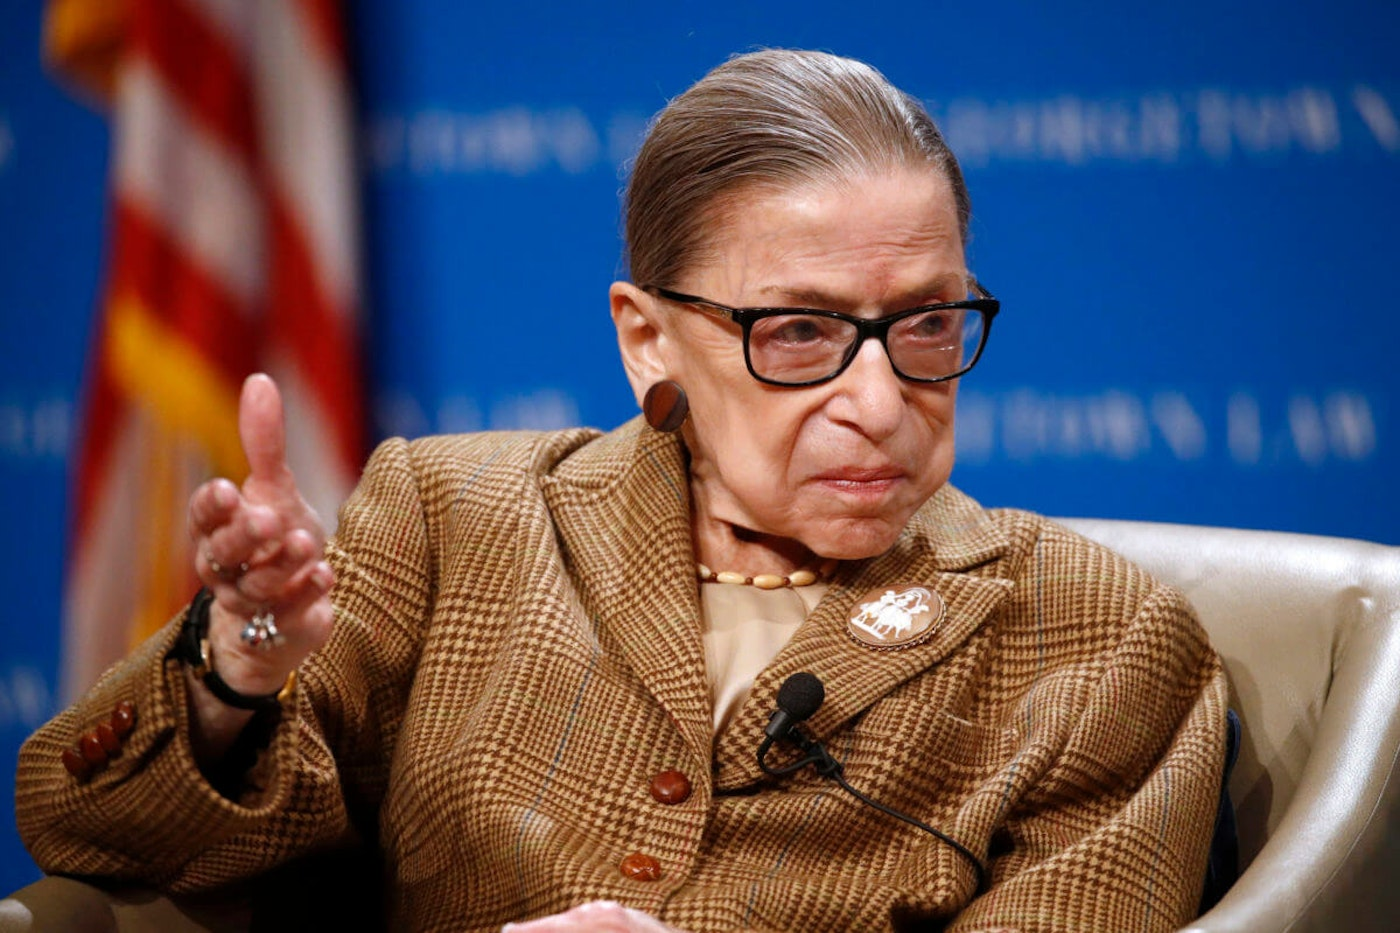 Supreme Court Justice Ruth Bader Ginsburg passed away on Sept. 18, 2020.